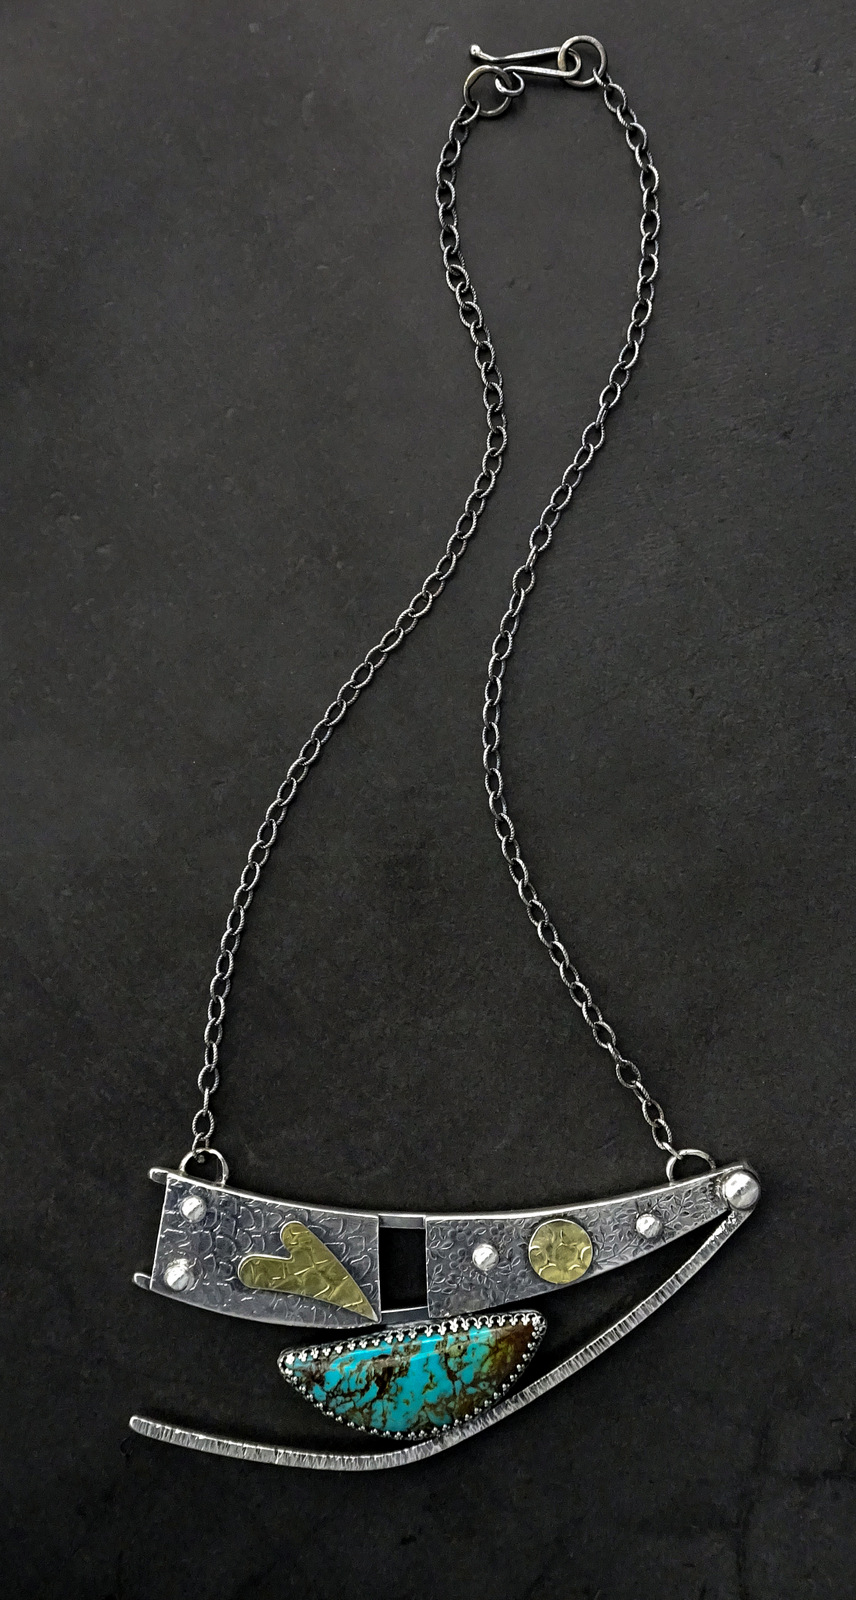 1Hand Crafted Silver & Turquoise Necklace, Sylvia McCollum-003.jpg